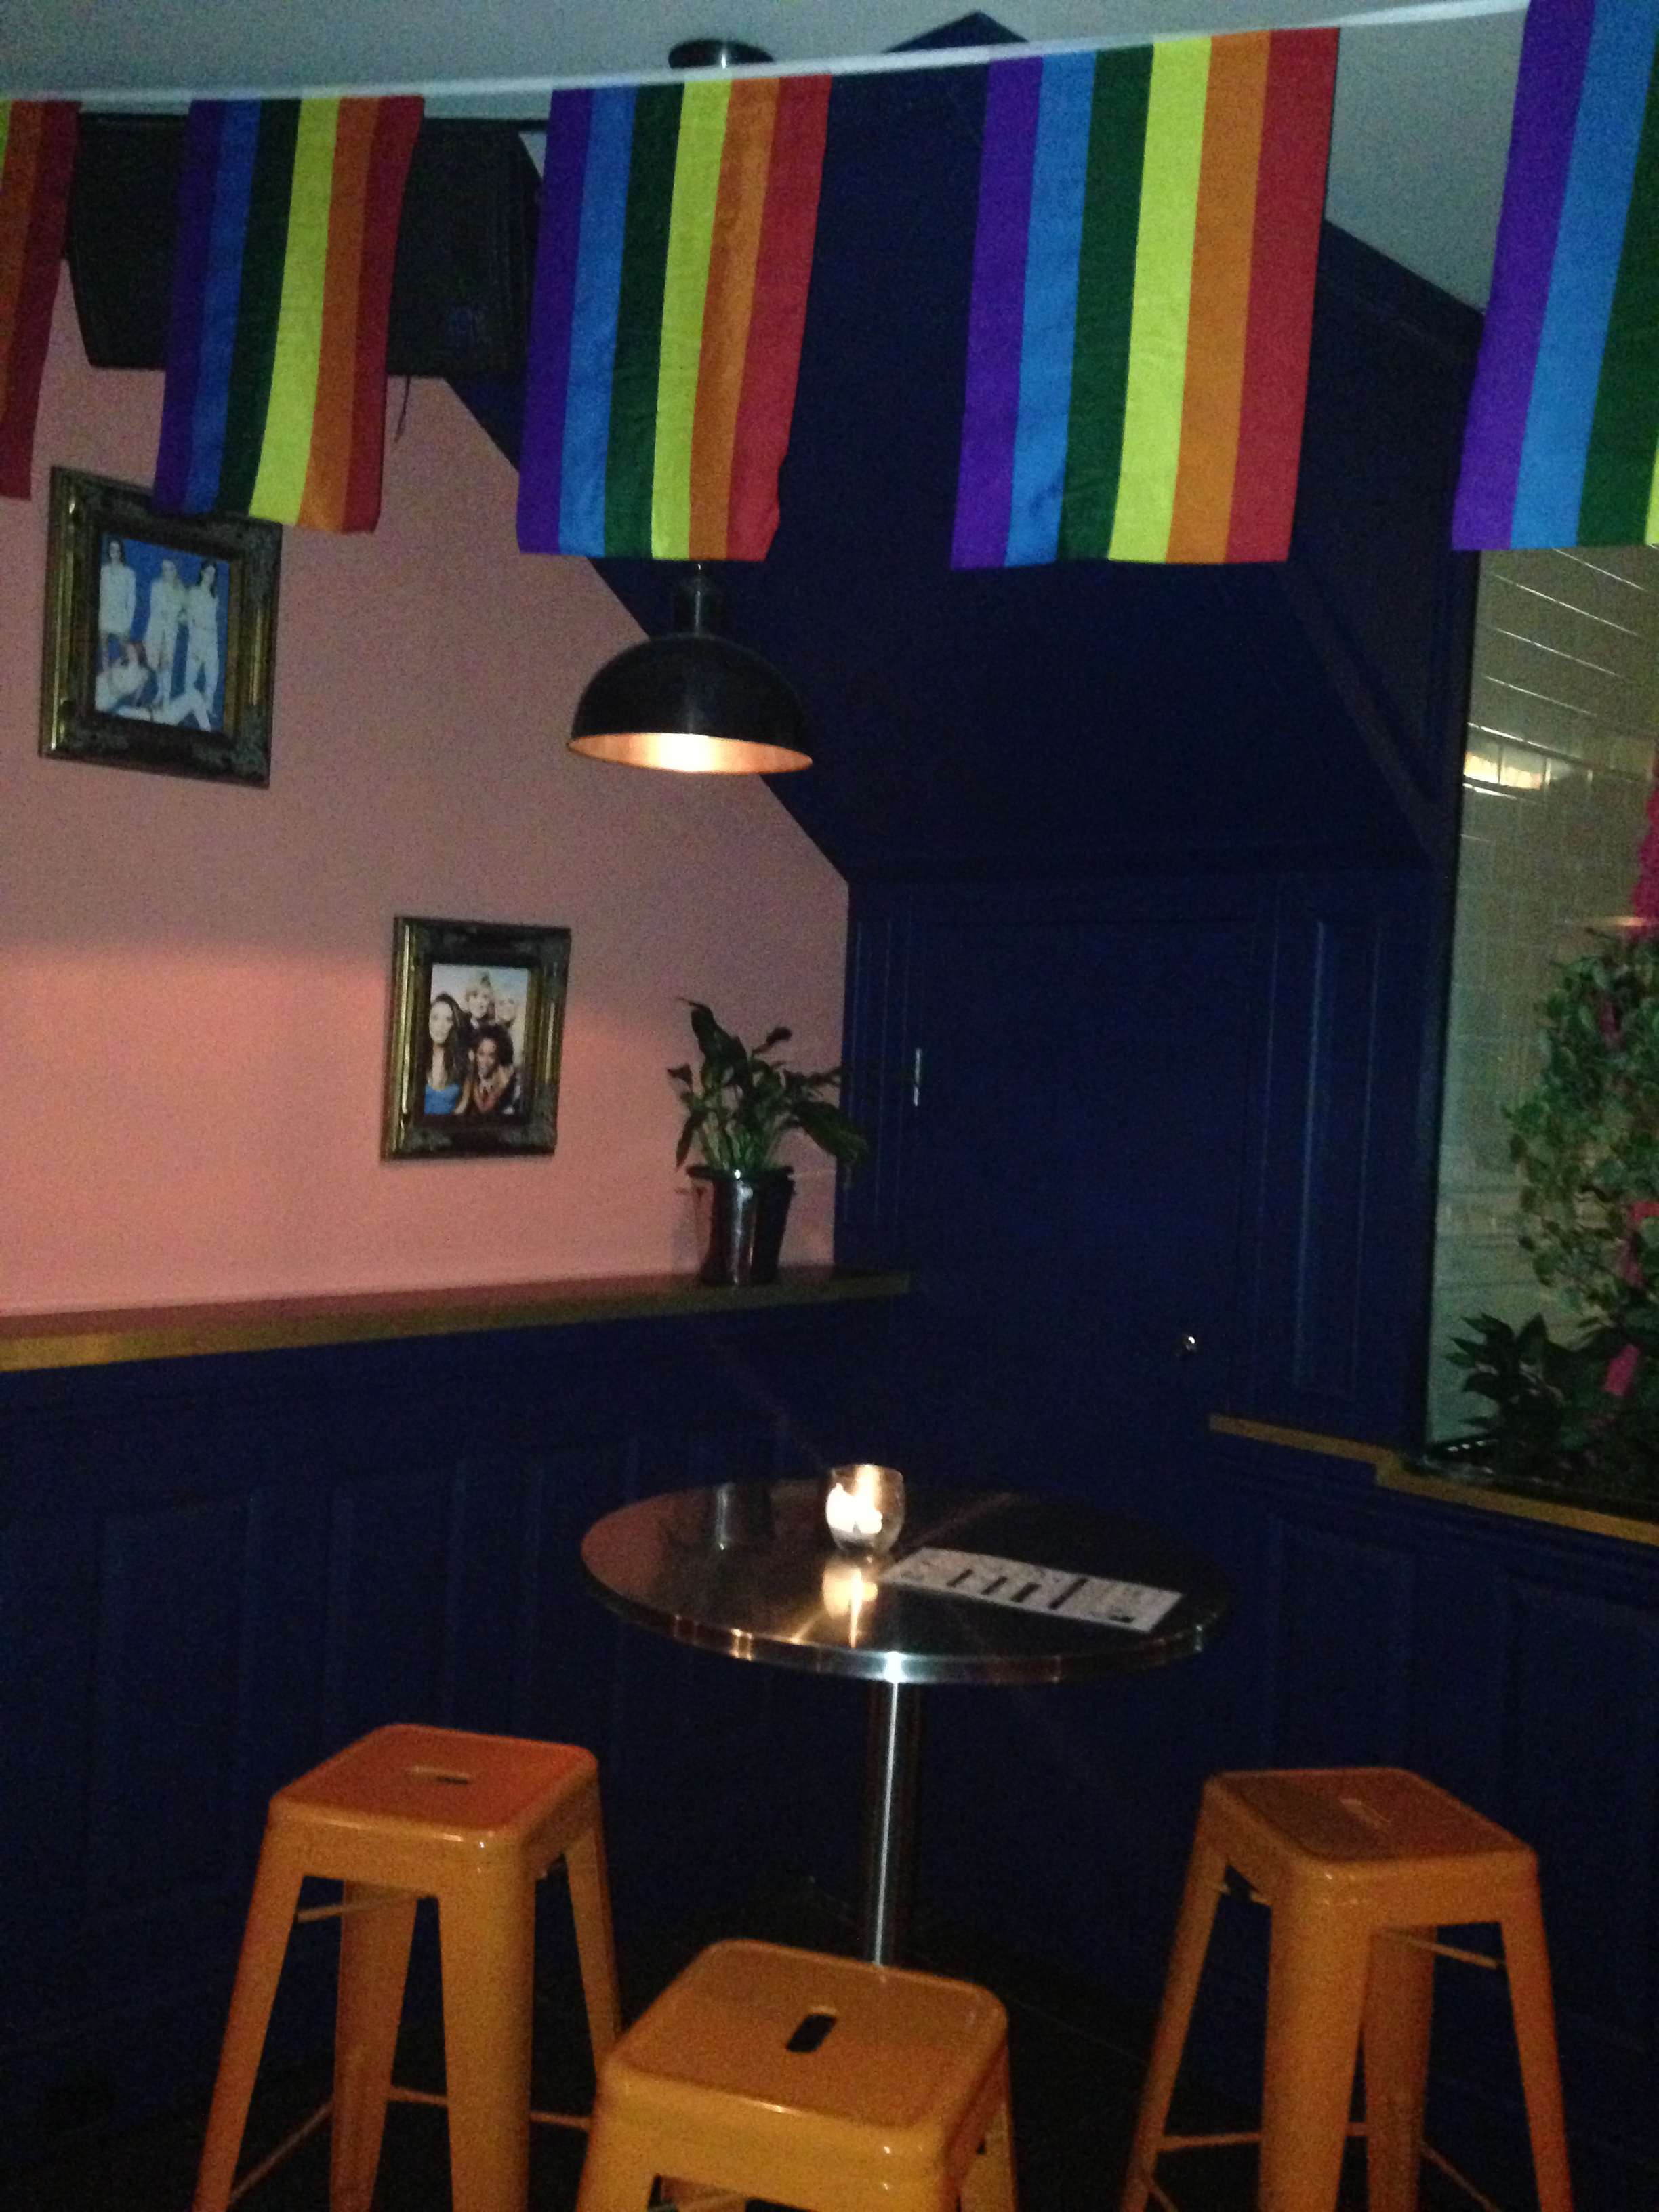 Excellent Lesbian bars near helena mt similar situation